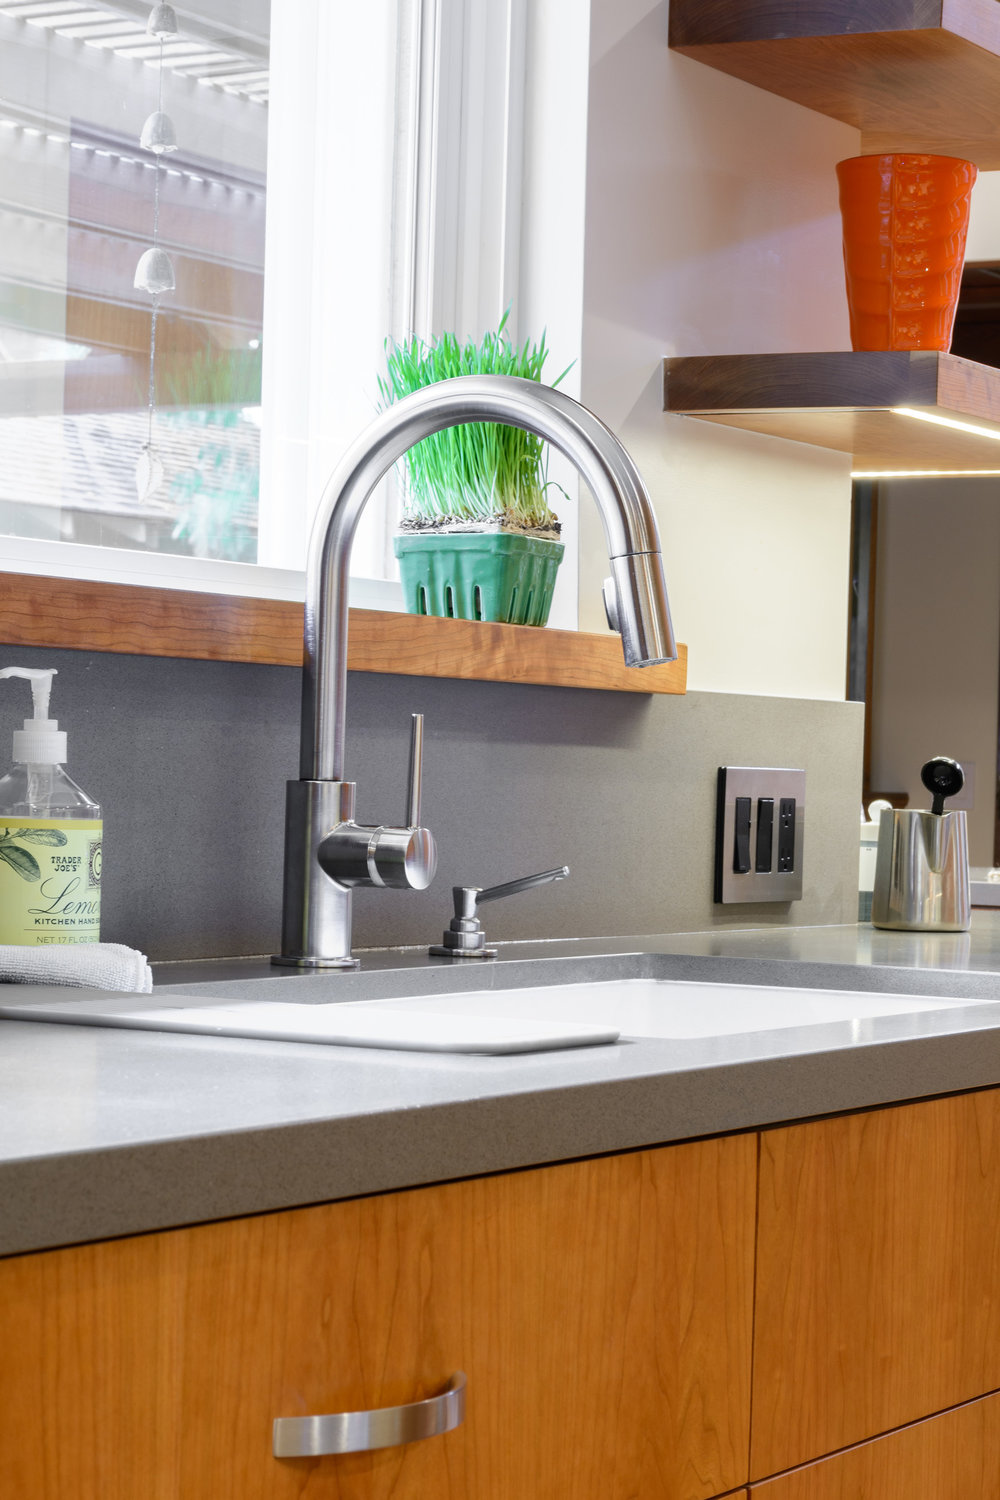 Contemporary kitchen gooseneck faucet deck-mounted on a grey quartz countertop and assorted with a built-in soap dispenser in front of a picture window